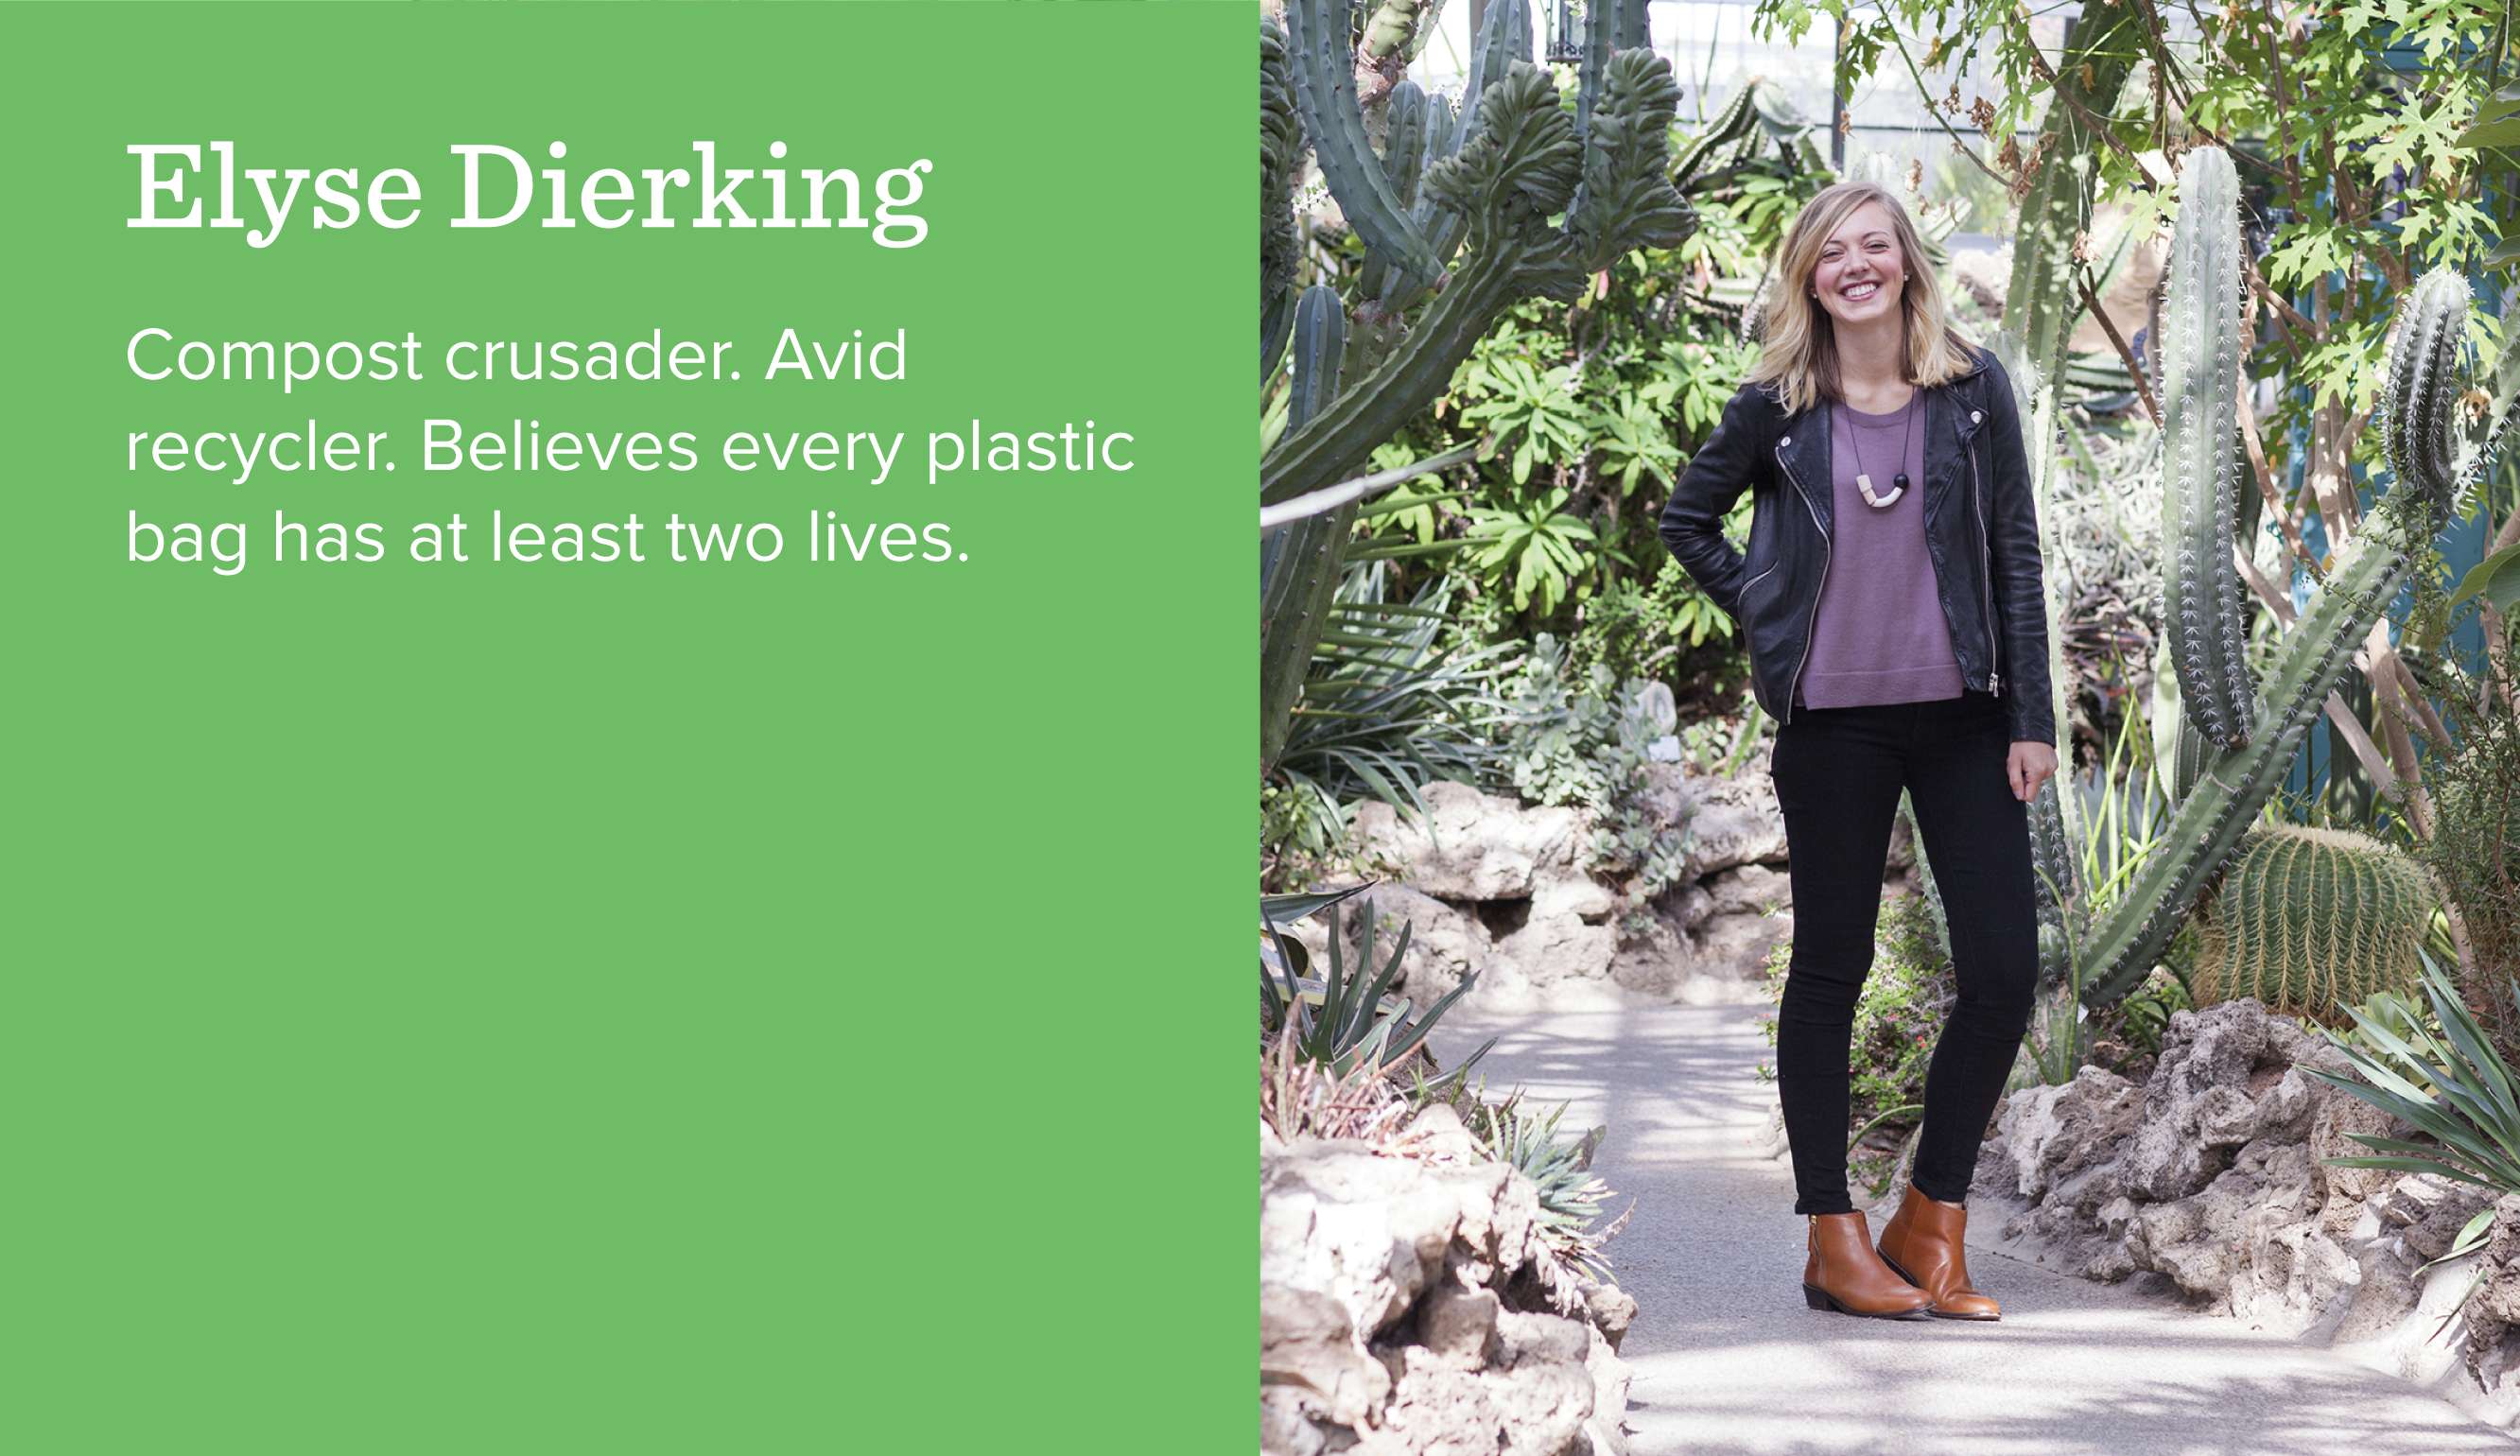 Elyse Dierking. Compost crusader. Avid recycler. Believes every plastic bag has at least two lives.